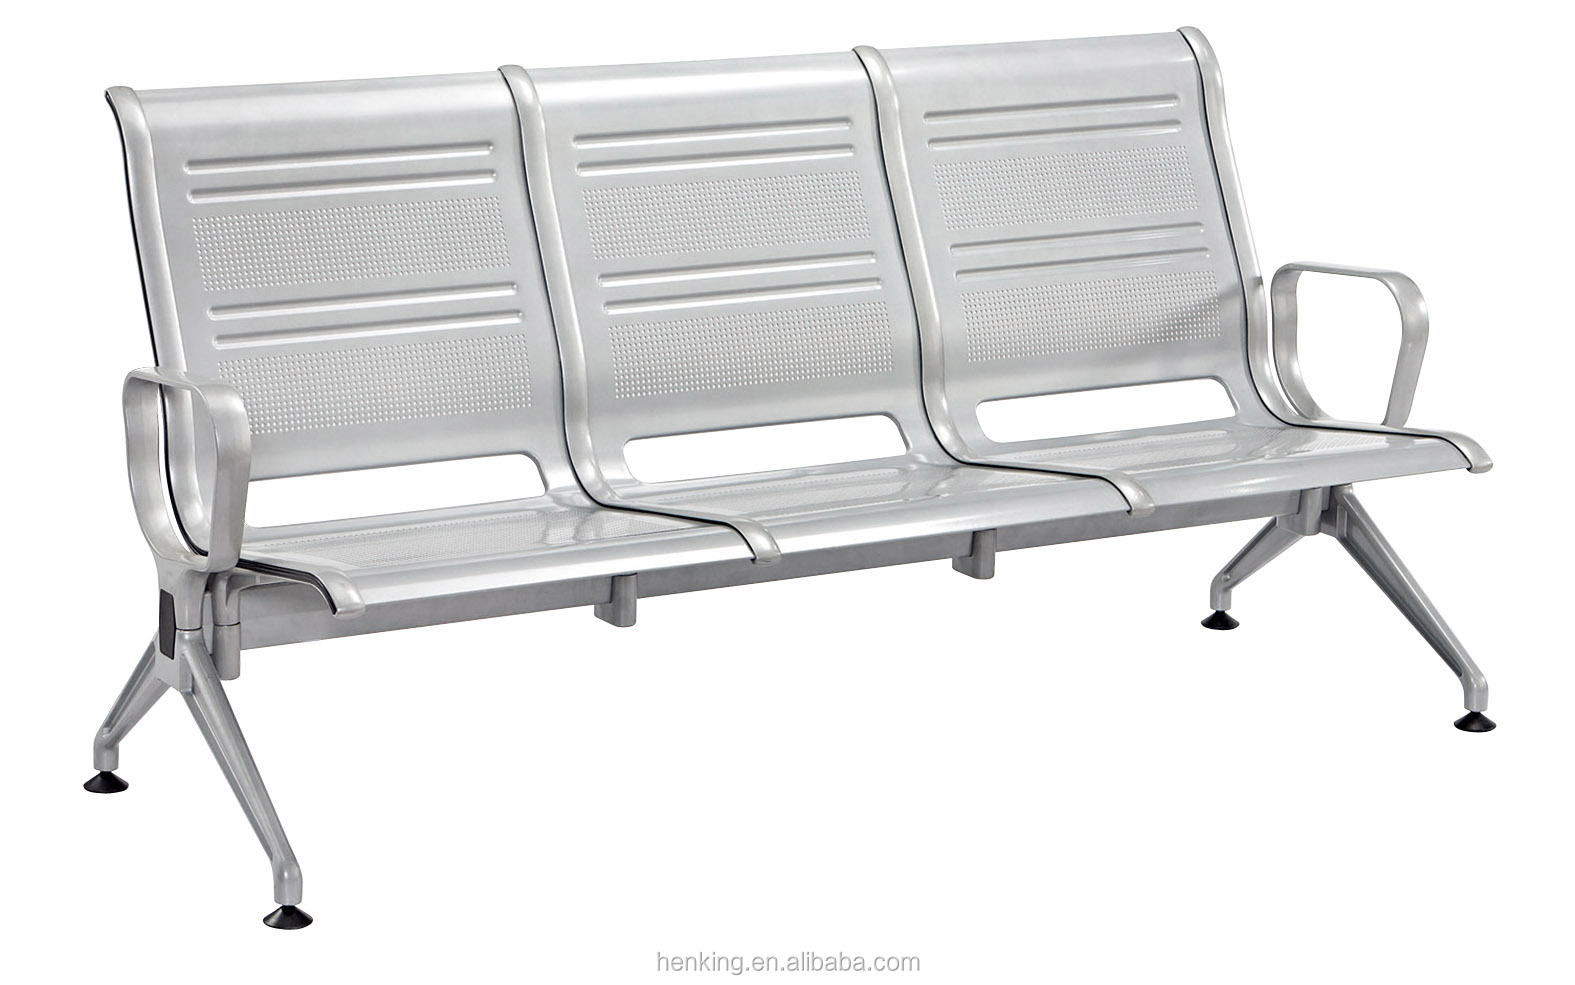 Stainless Steel 3 Seater Chair Price Stainless Steel Sofa